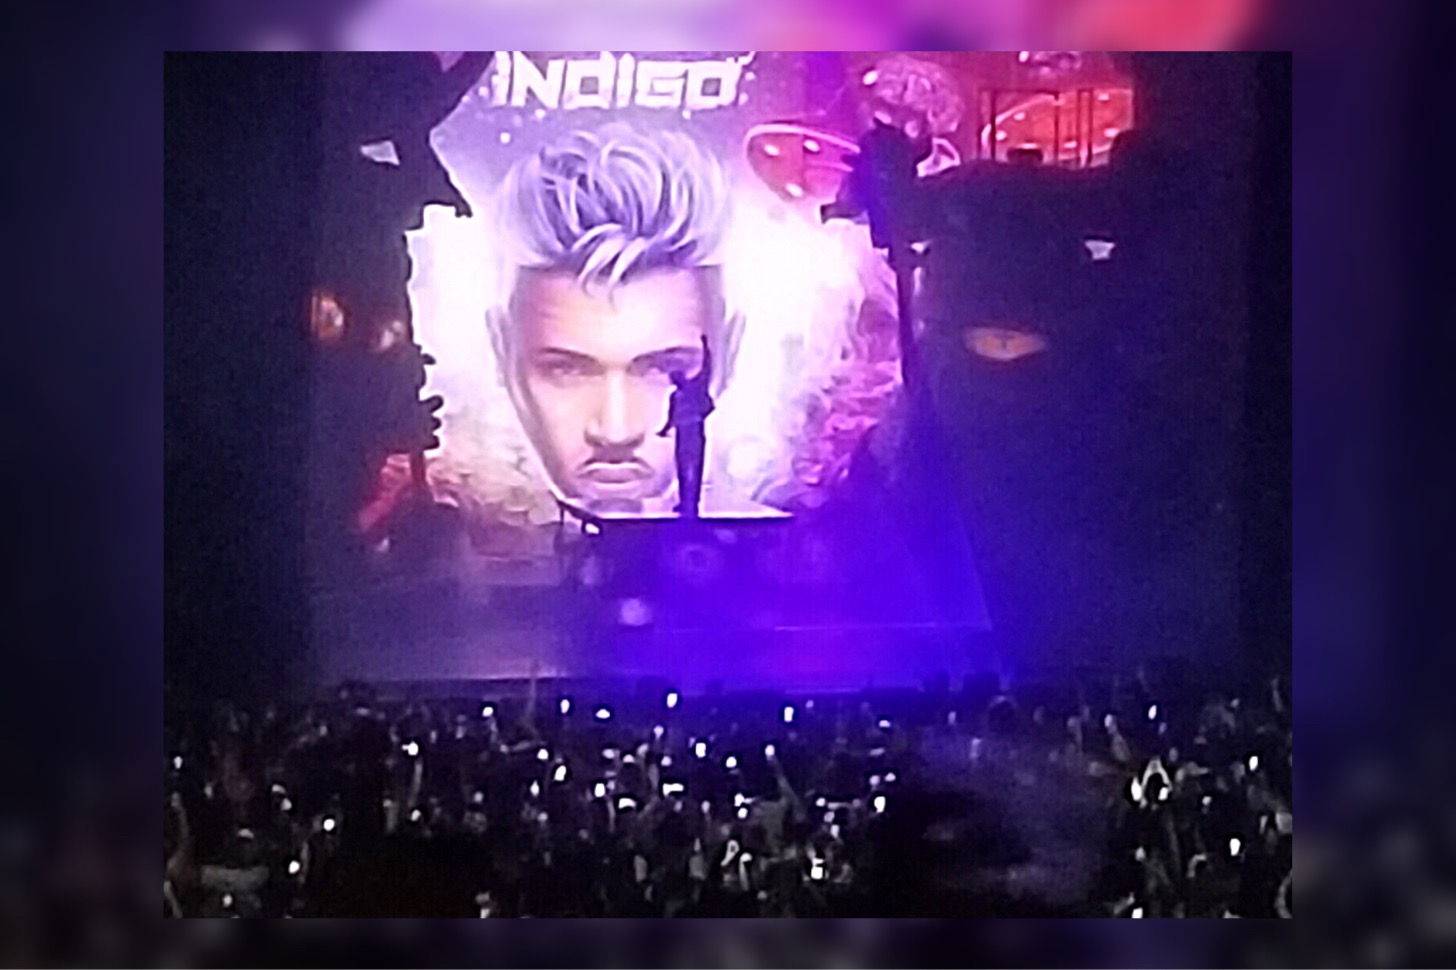 The visuals of the show added to the experience.